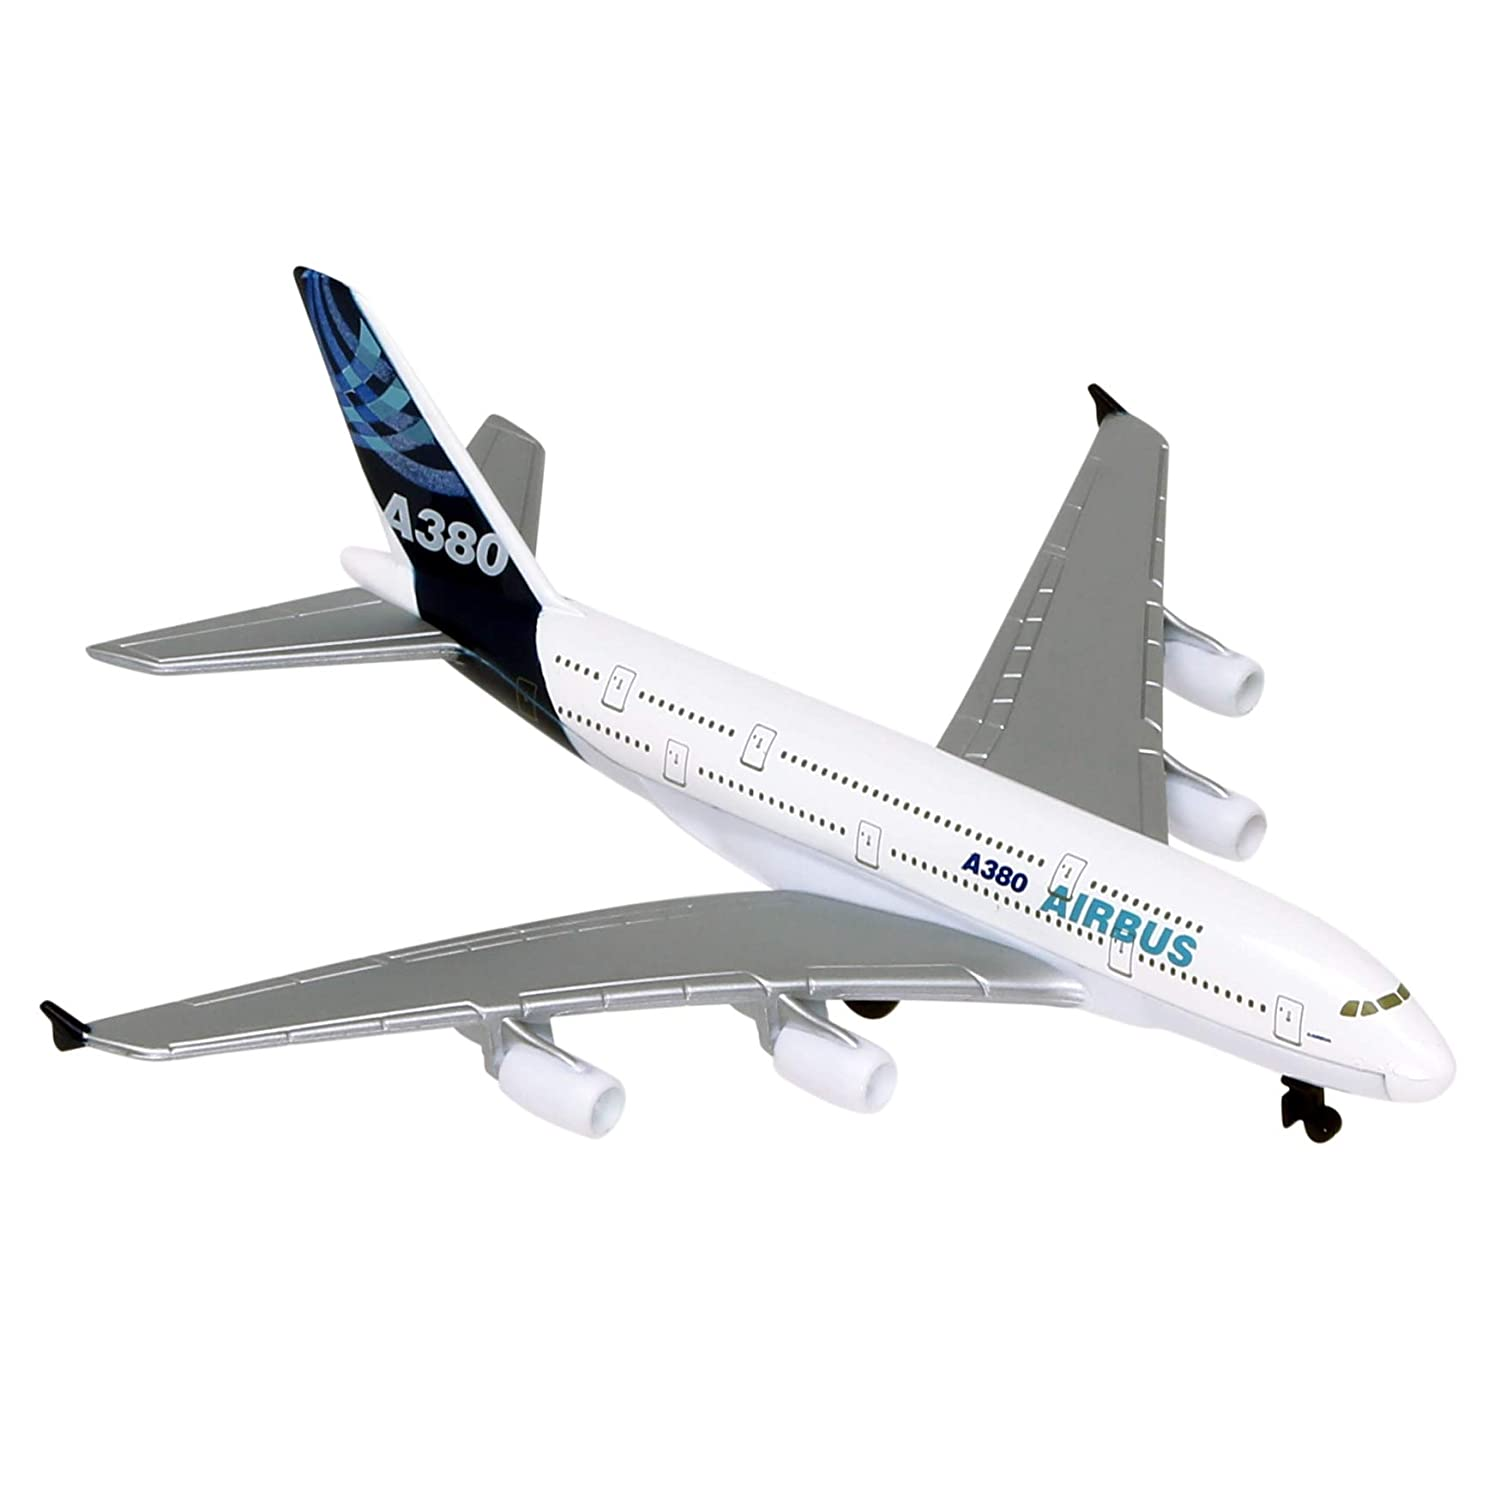 Real Toys RT0380 Airbus A380 House Toy Daron Worldwide Trading